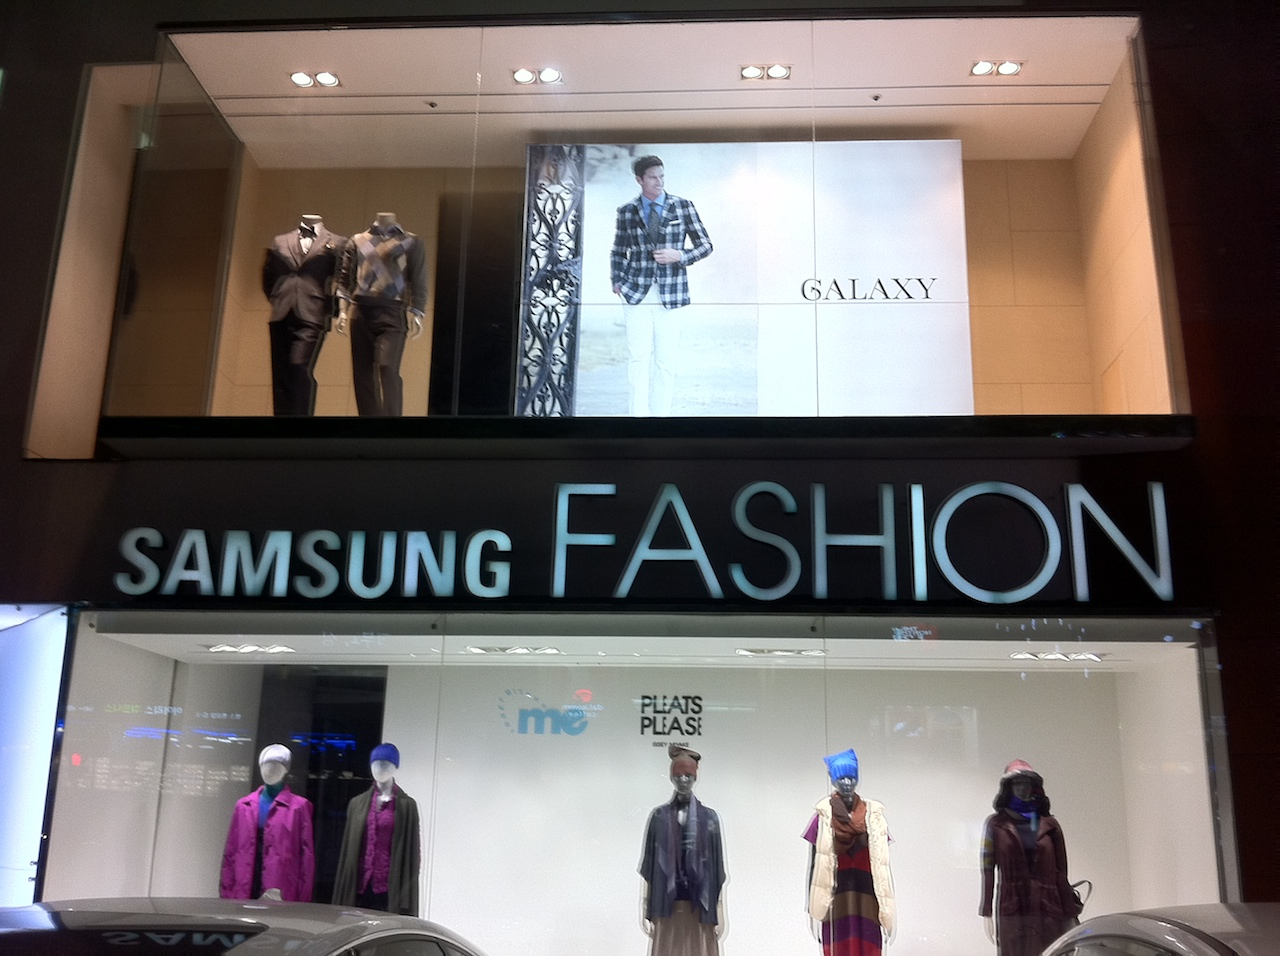 Fashion Picture: Samsung: Designing 'Fashionology' For Life